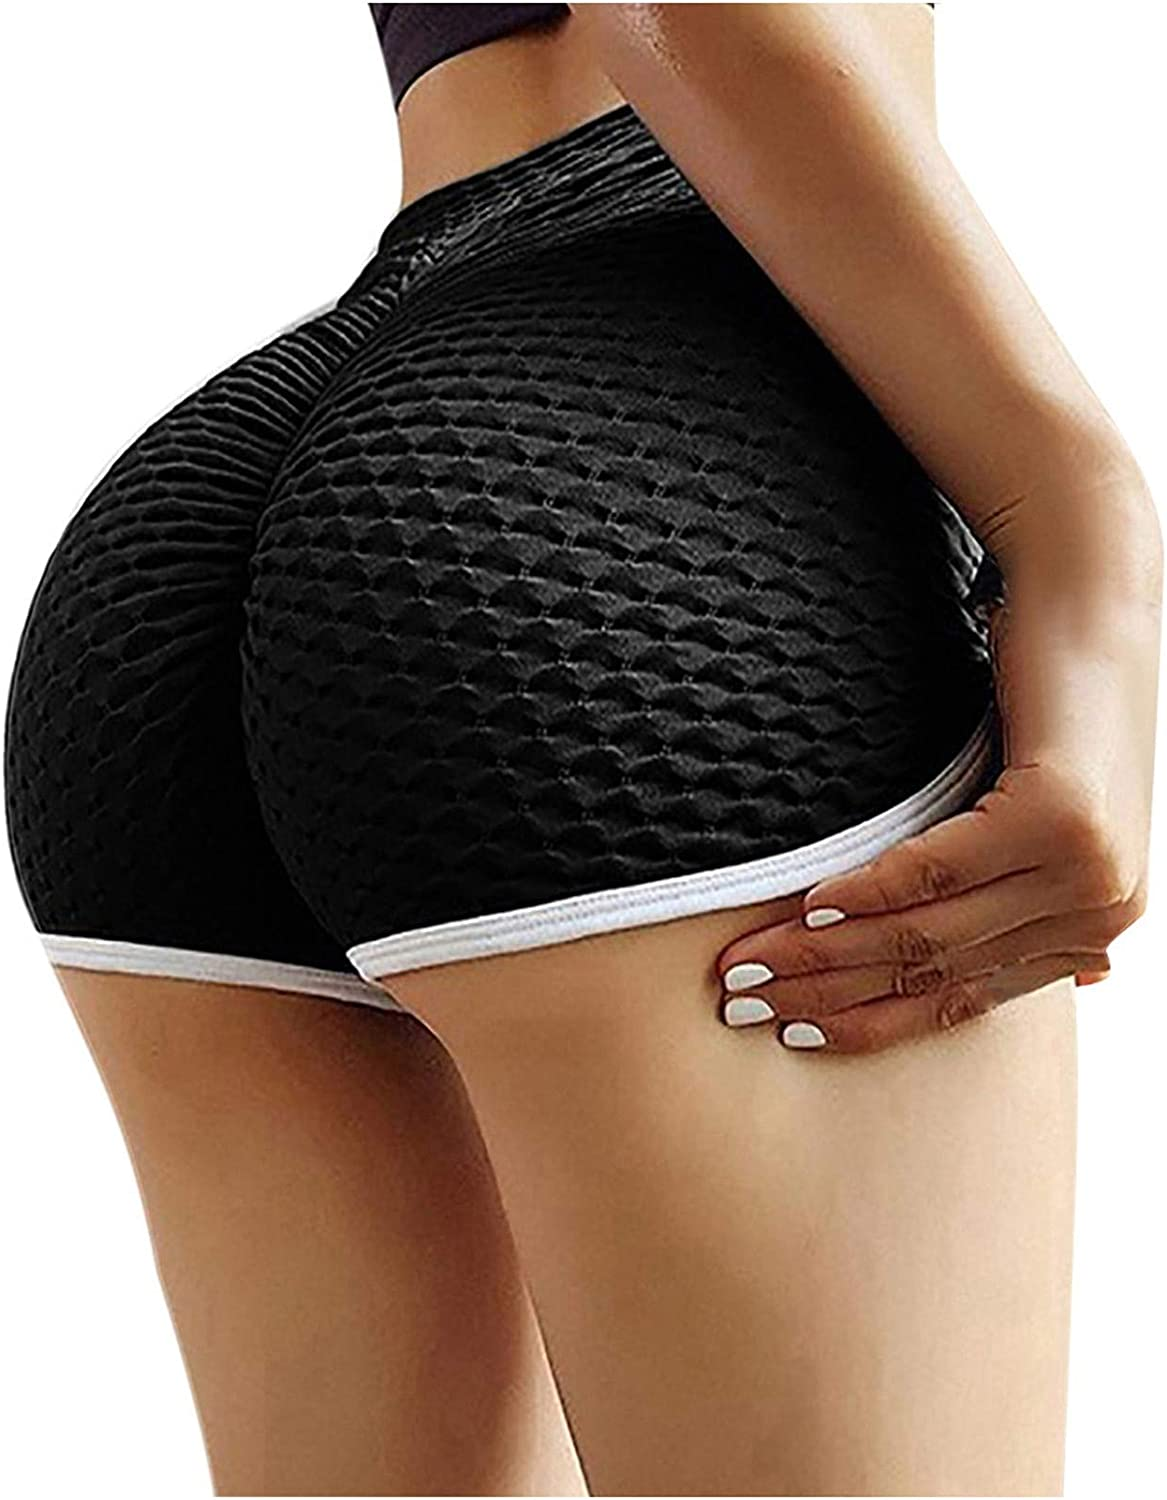 Women High Waisted Yoga Shorts Seamless Butt Lifting Tummy Control Gym Exercise Workout Active Leggings